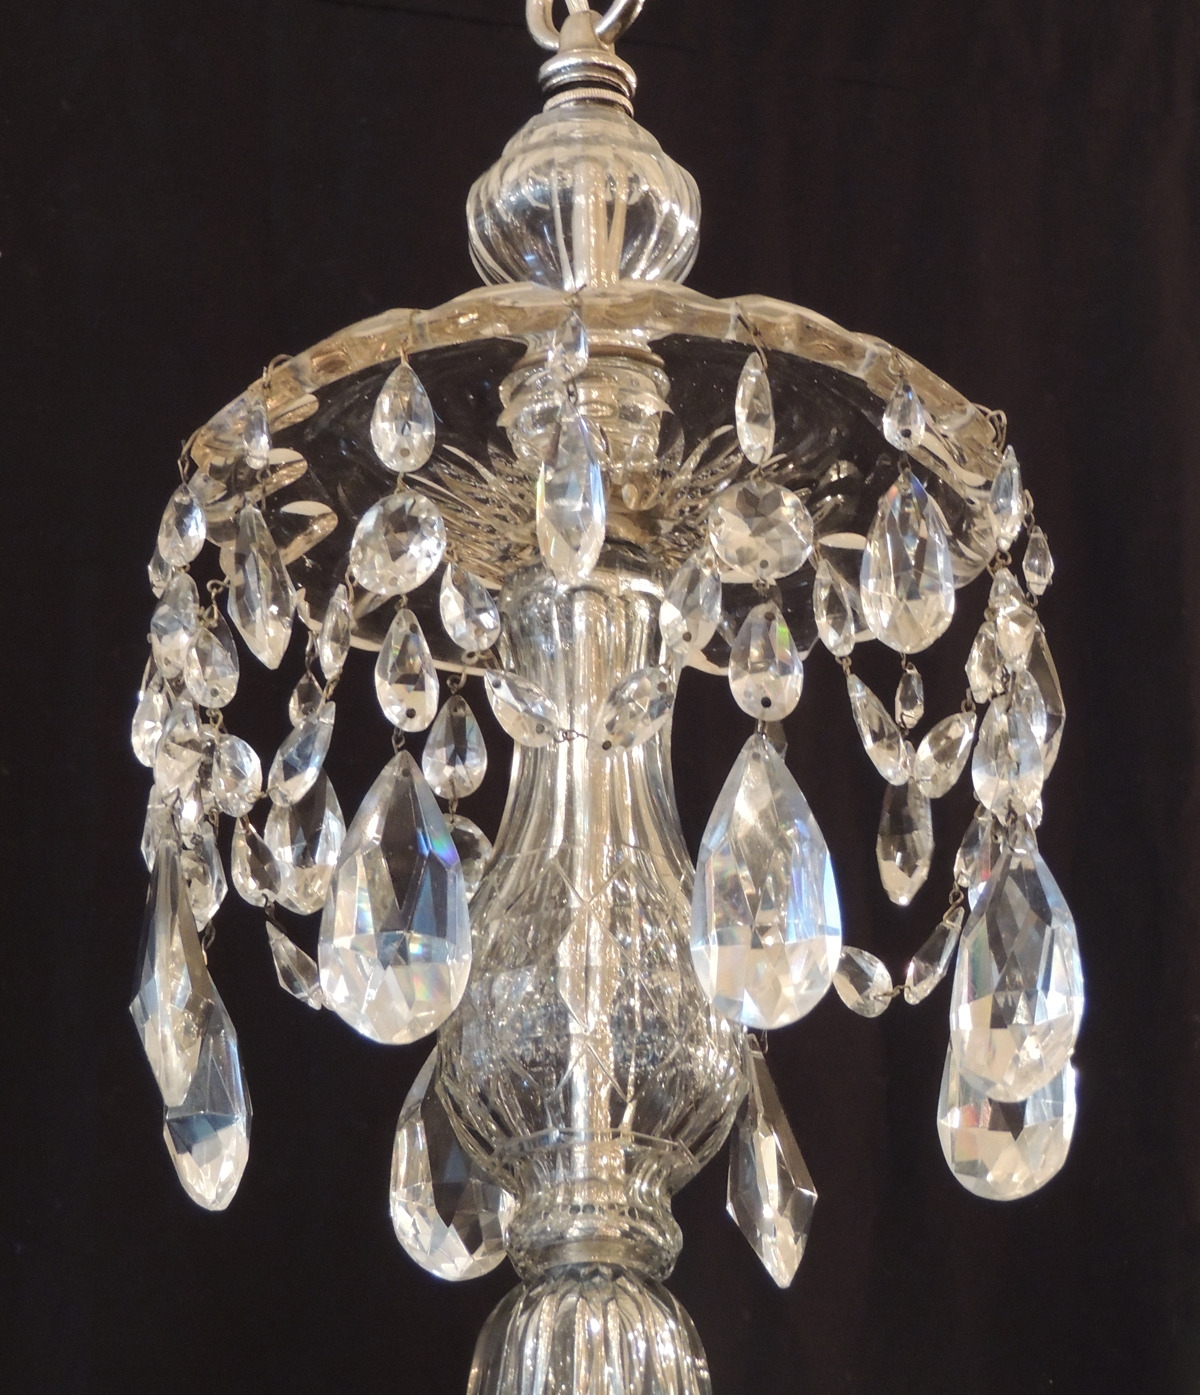 Amazing Of Bedroom Crystal Chandelier Elegant Crystal Chandelier Throughout Lead Crystal Chandelier (Image 4 of 15)